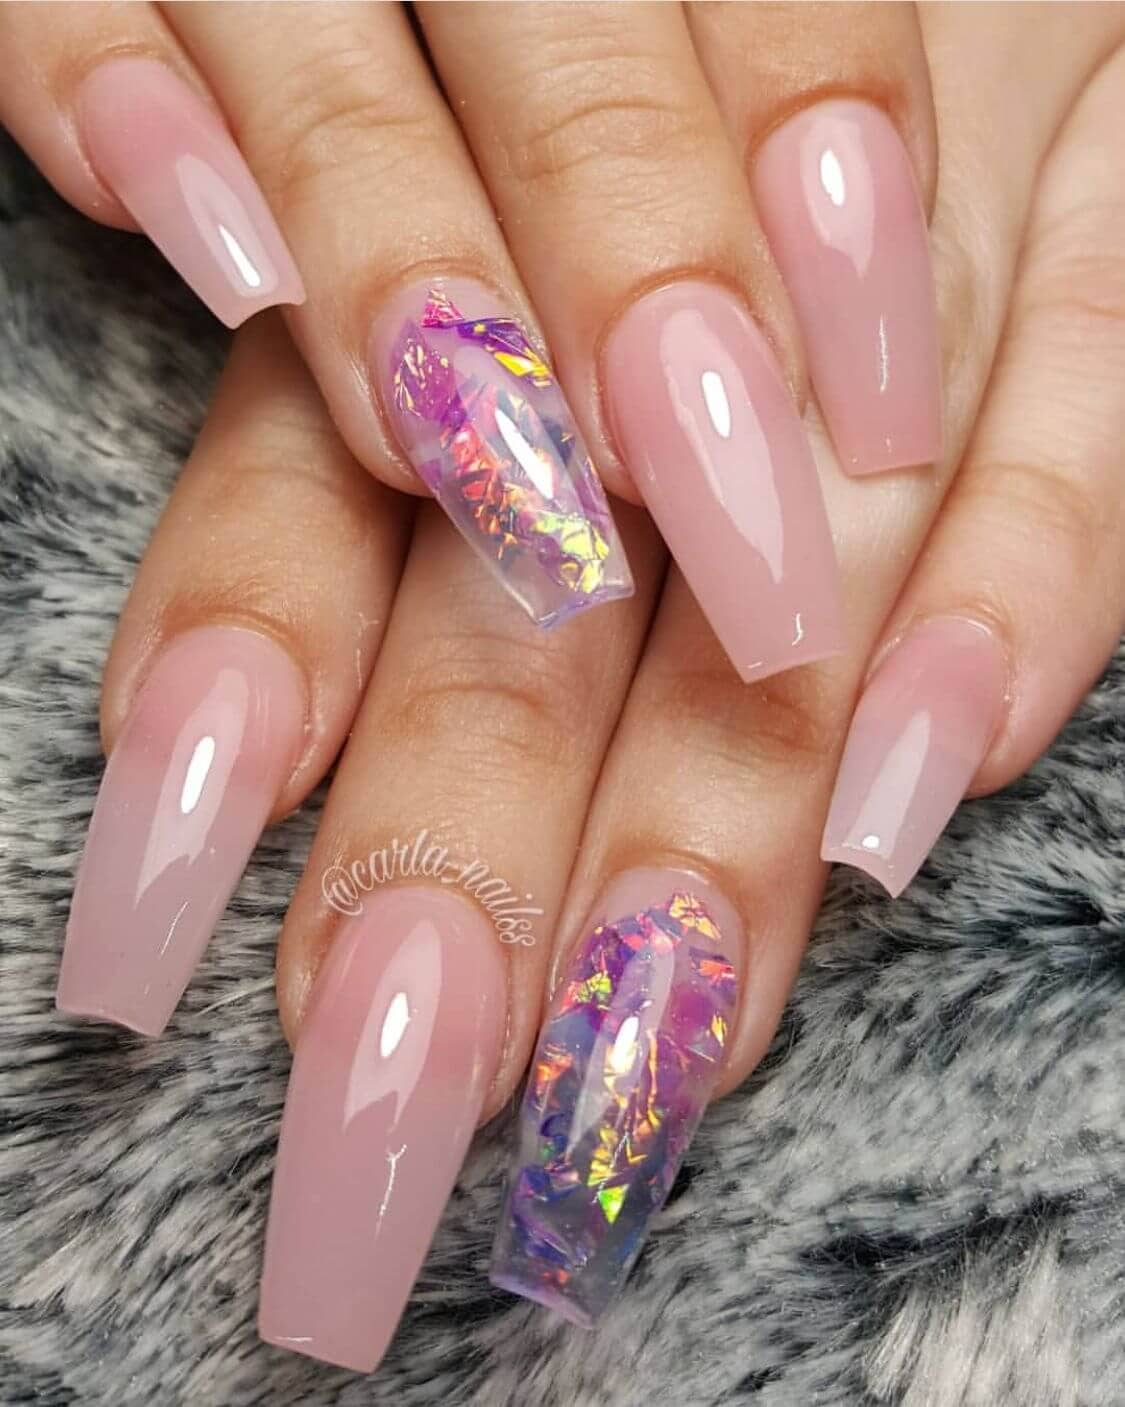 50 Awesome Coffin Nails Designs You'll Flip For In 2019